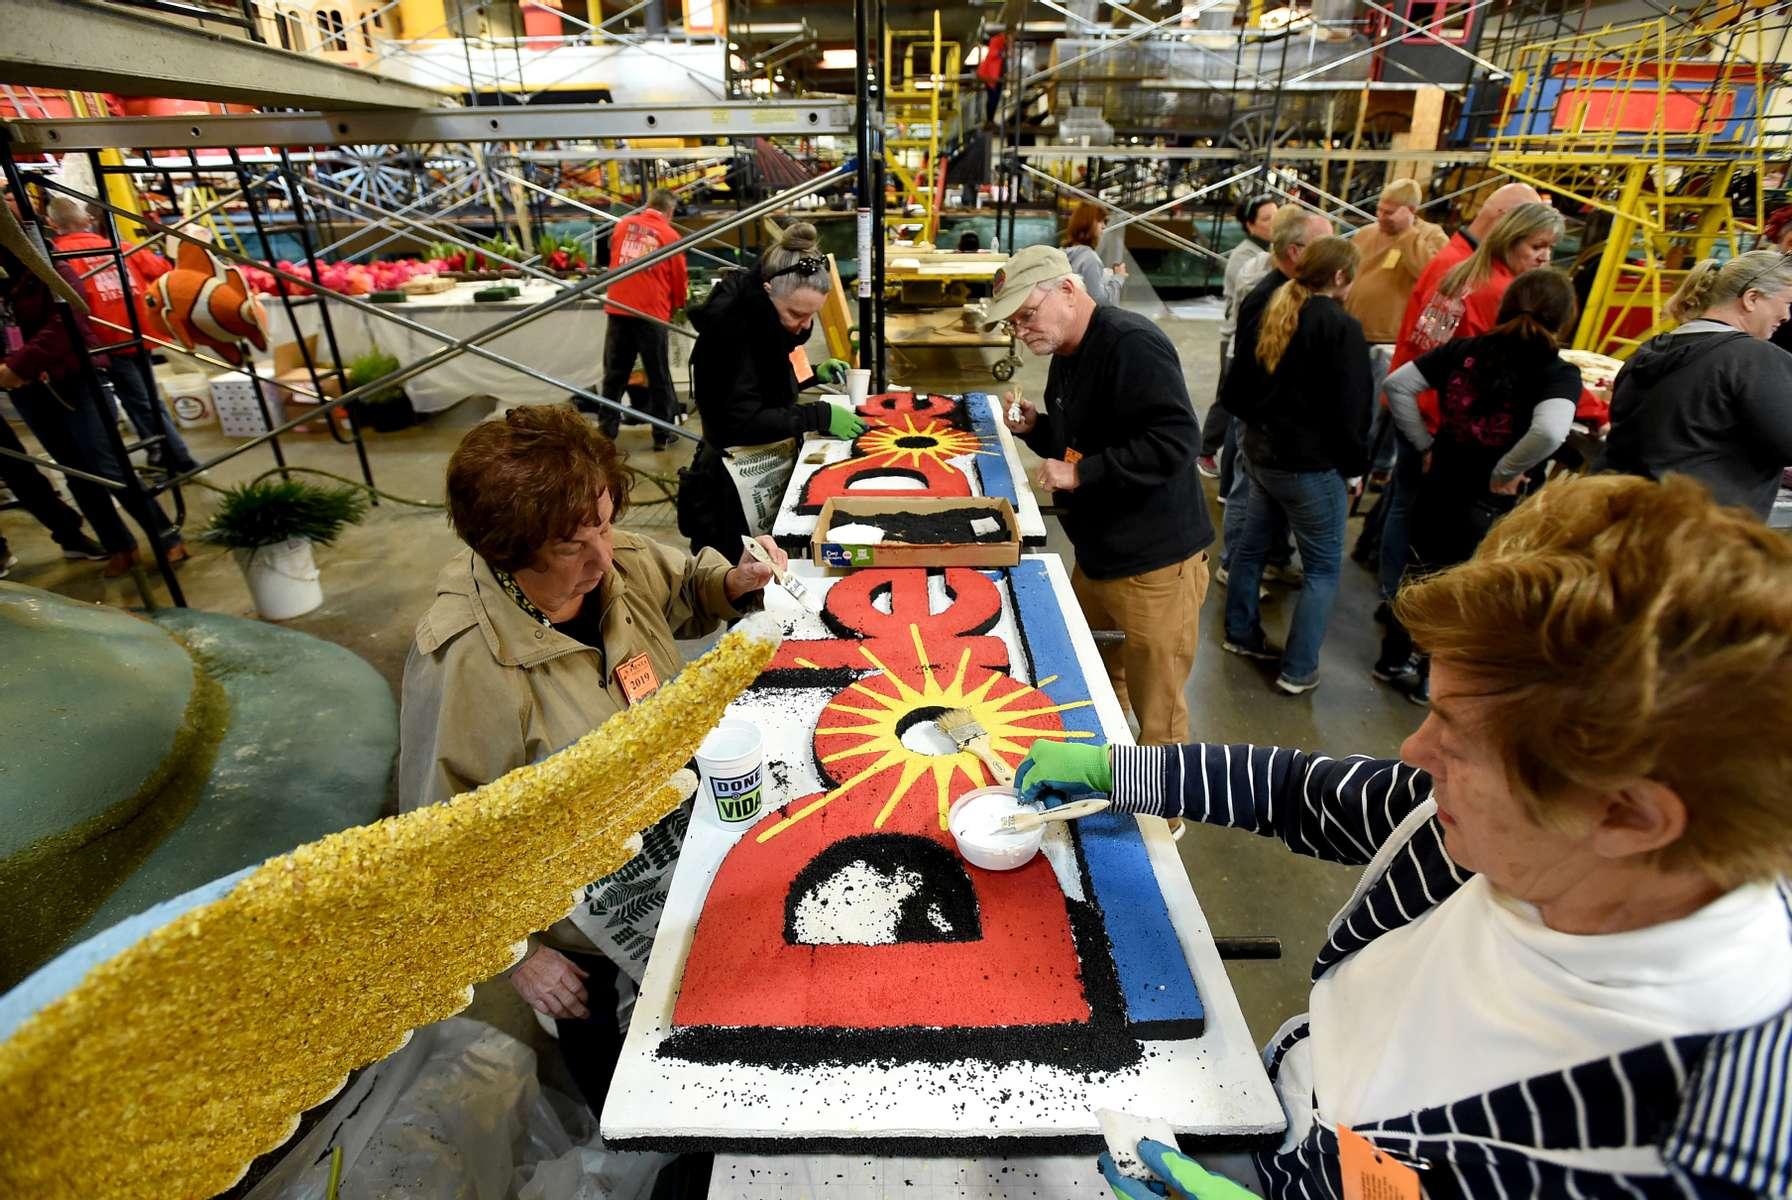 Volunteers apply final touches to the Dole Packaged Foods {quote}Rhythm of Paradise{quote} Rose Parade float during Decorating Week at Fiesta Parade Floats on Saturday, Dec. 29, 2018 in Irwindale, Calif. (Jordan Strauss/AP Images for Dole Packaged Foods)